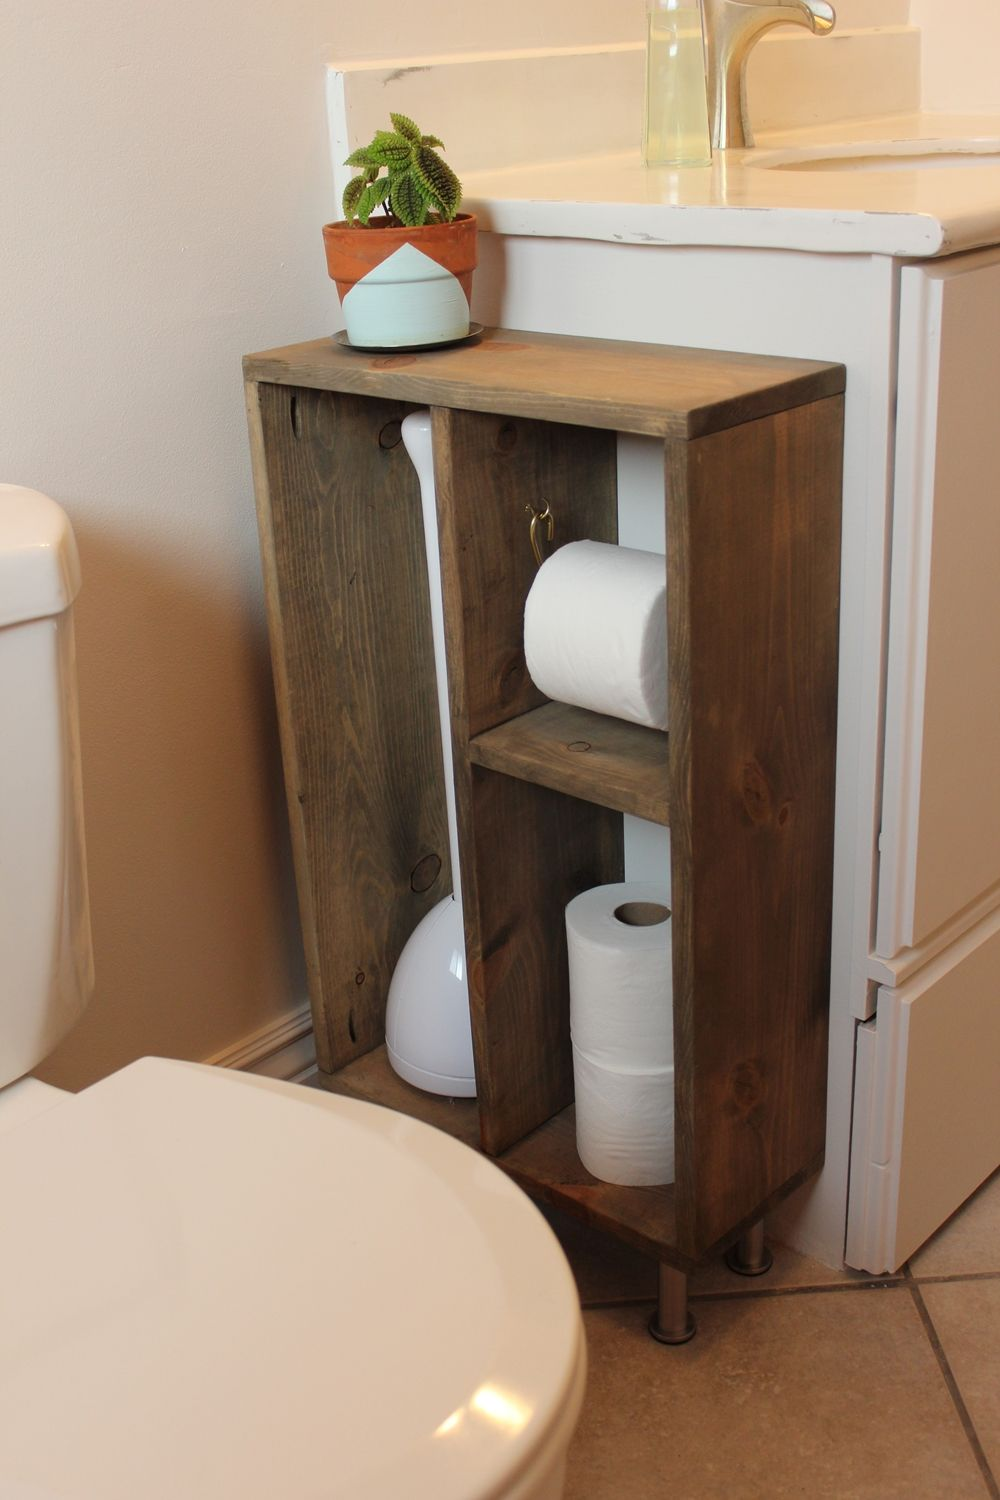 Diy bathroom shelves to increase your storage space Bathroom vanity cabinet storage